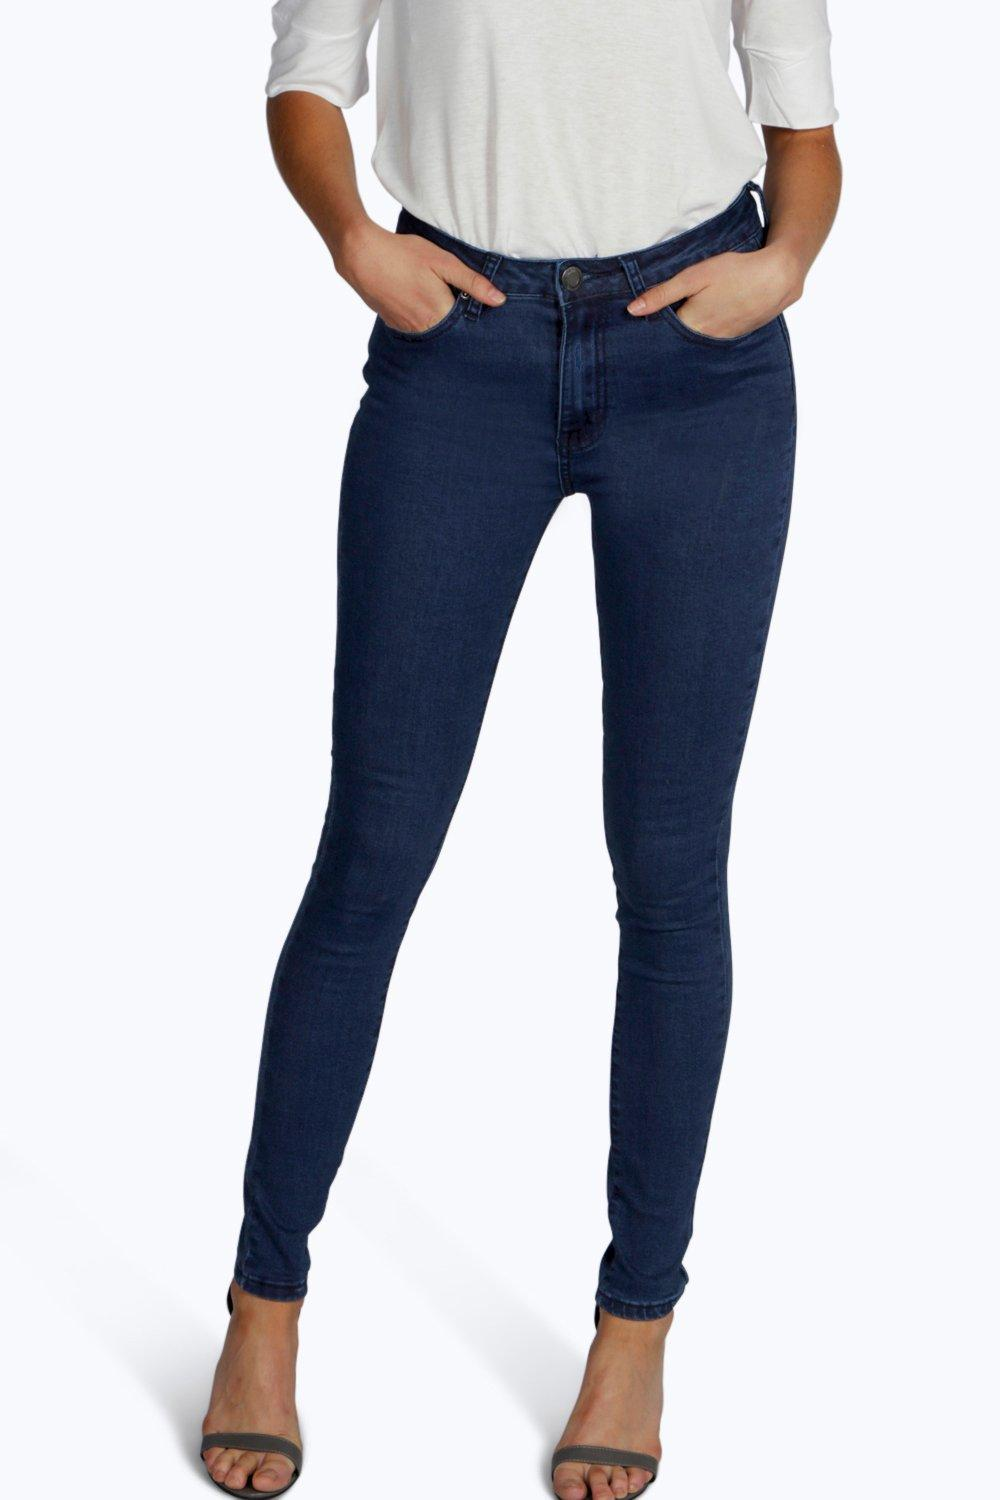 Morgan 5 Pkt High Rise Clean Skinny Jeans blue